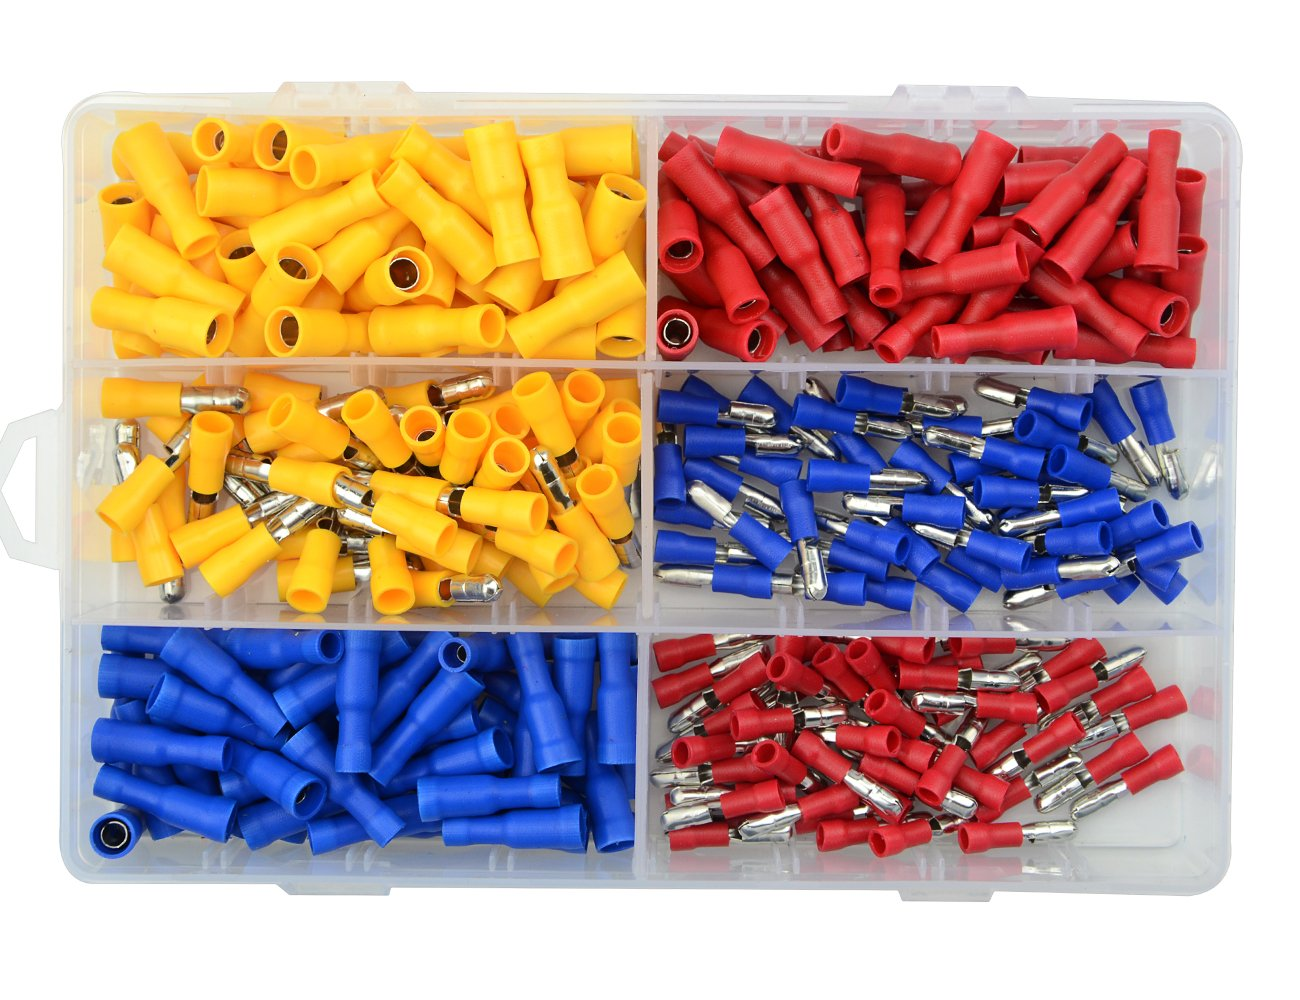 WGCD 300 PCS Insulated Male Female Bullet Butt Wire Crimp Connector Terminals Assortment 12-10 16-14 22-16 Gauge